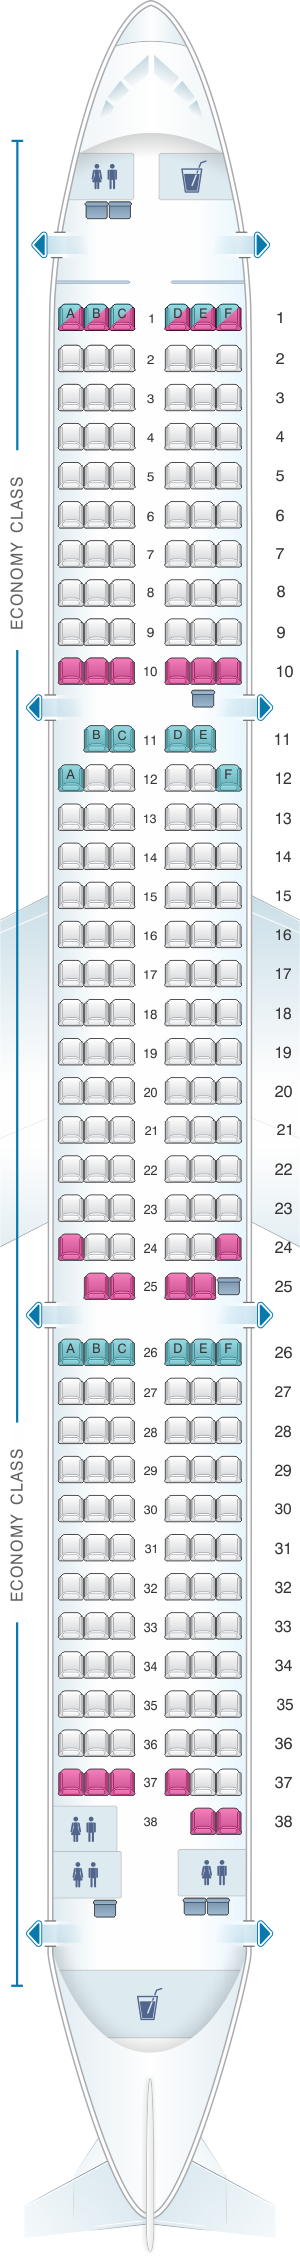 Seat map for Thomas Cook Airlines Airbus A321 200